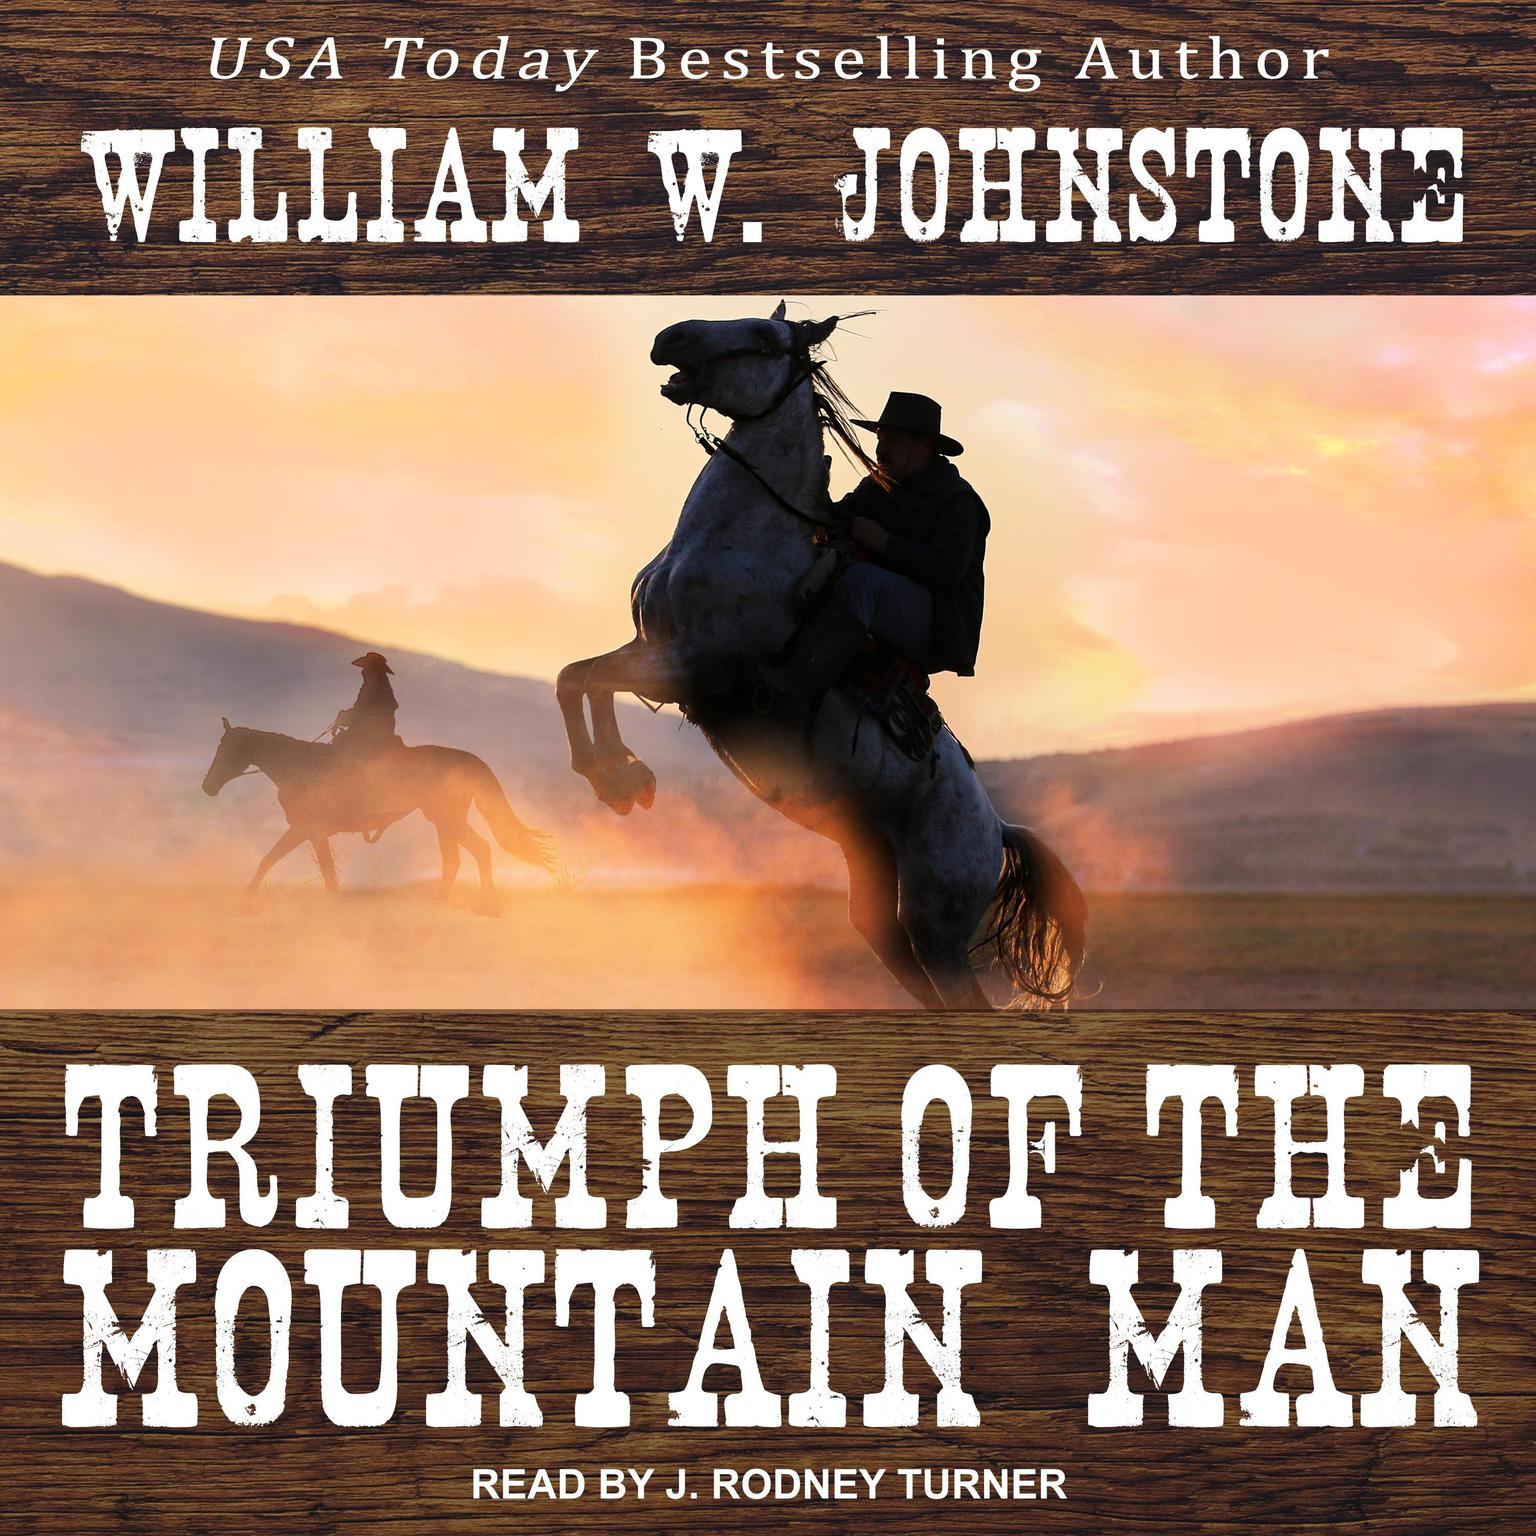 Triumph of the Mountain Man Audiobook, by William W. Johnstone